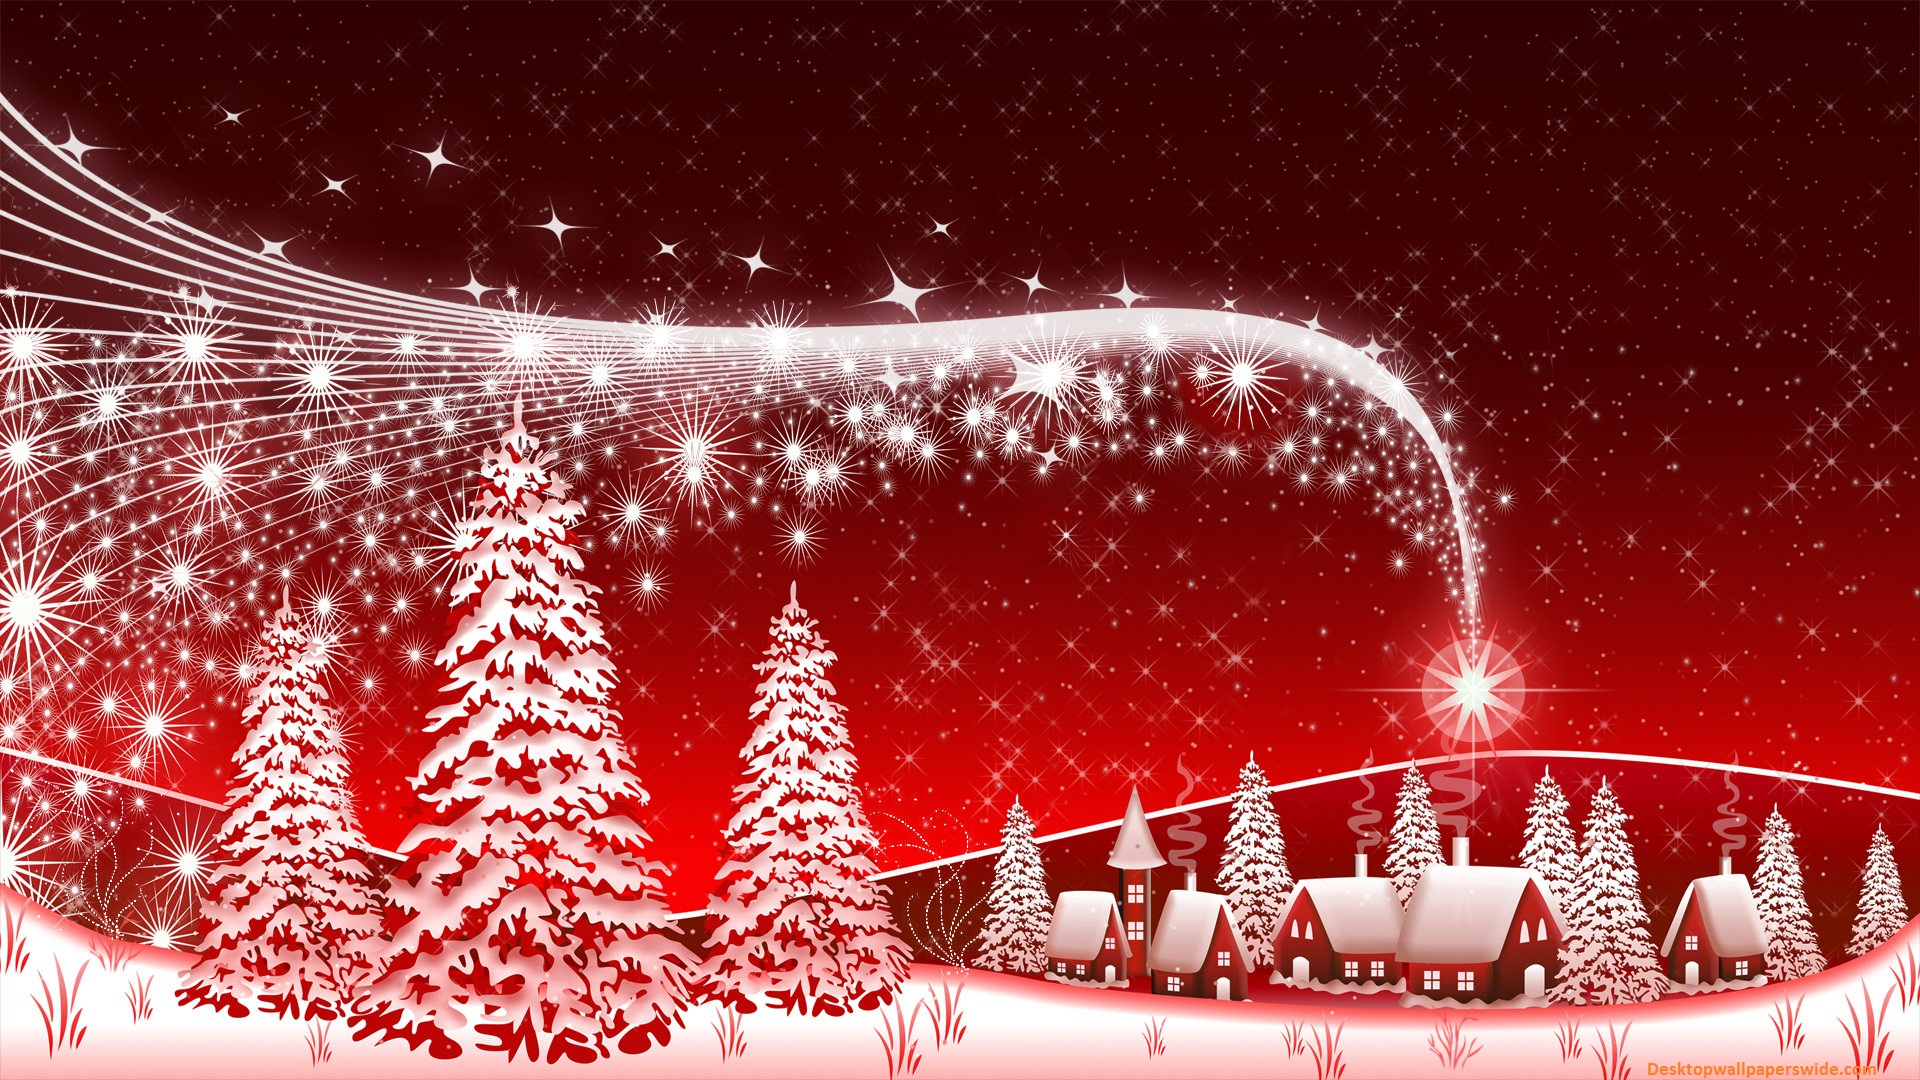 merry christmas wallpapers background